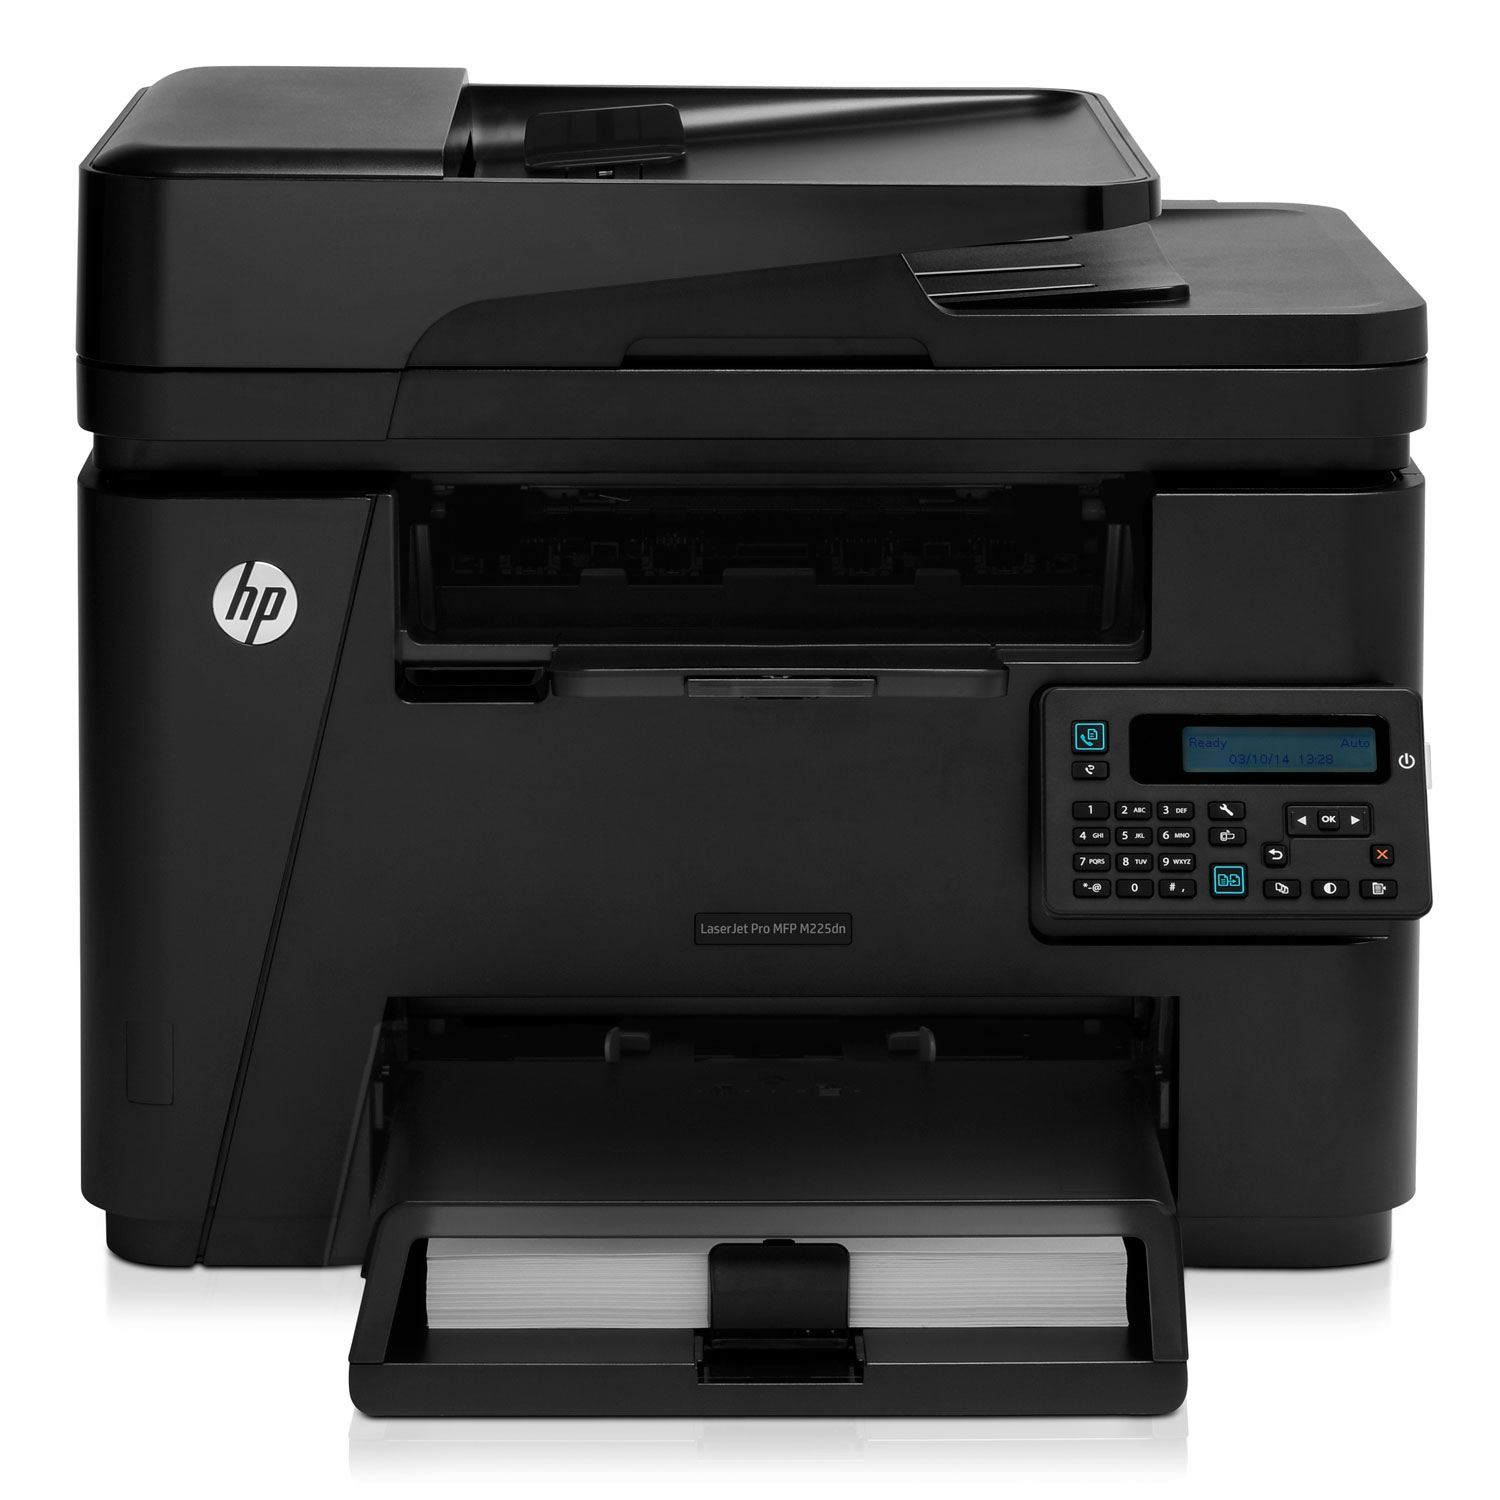 hp laserjet pro mfp m225dn imprimante multifonction hp sur. Black Bedroom Furniture Sets. Home Design Ideas